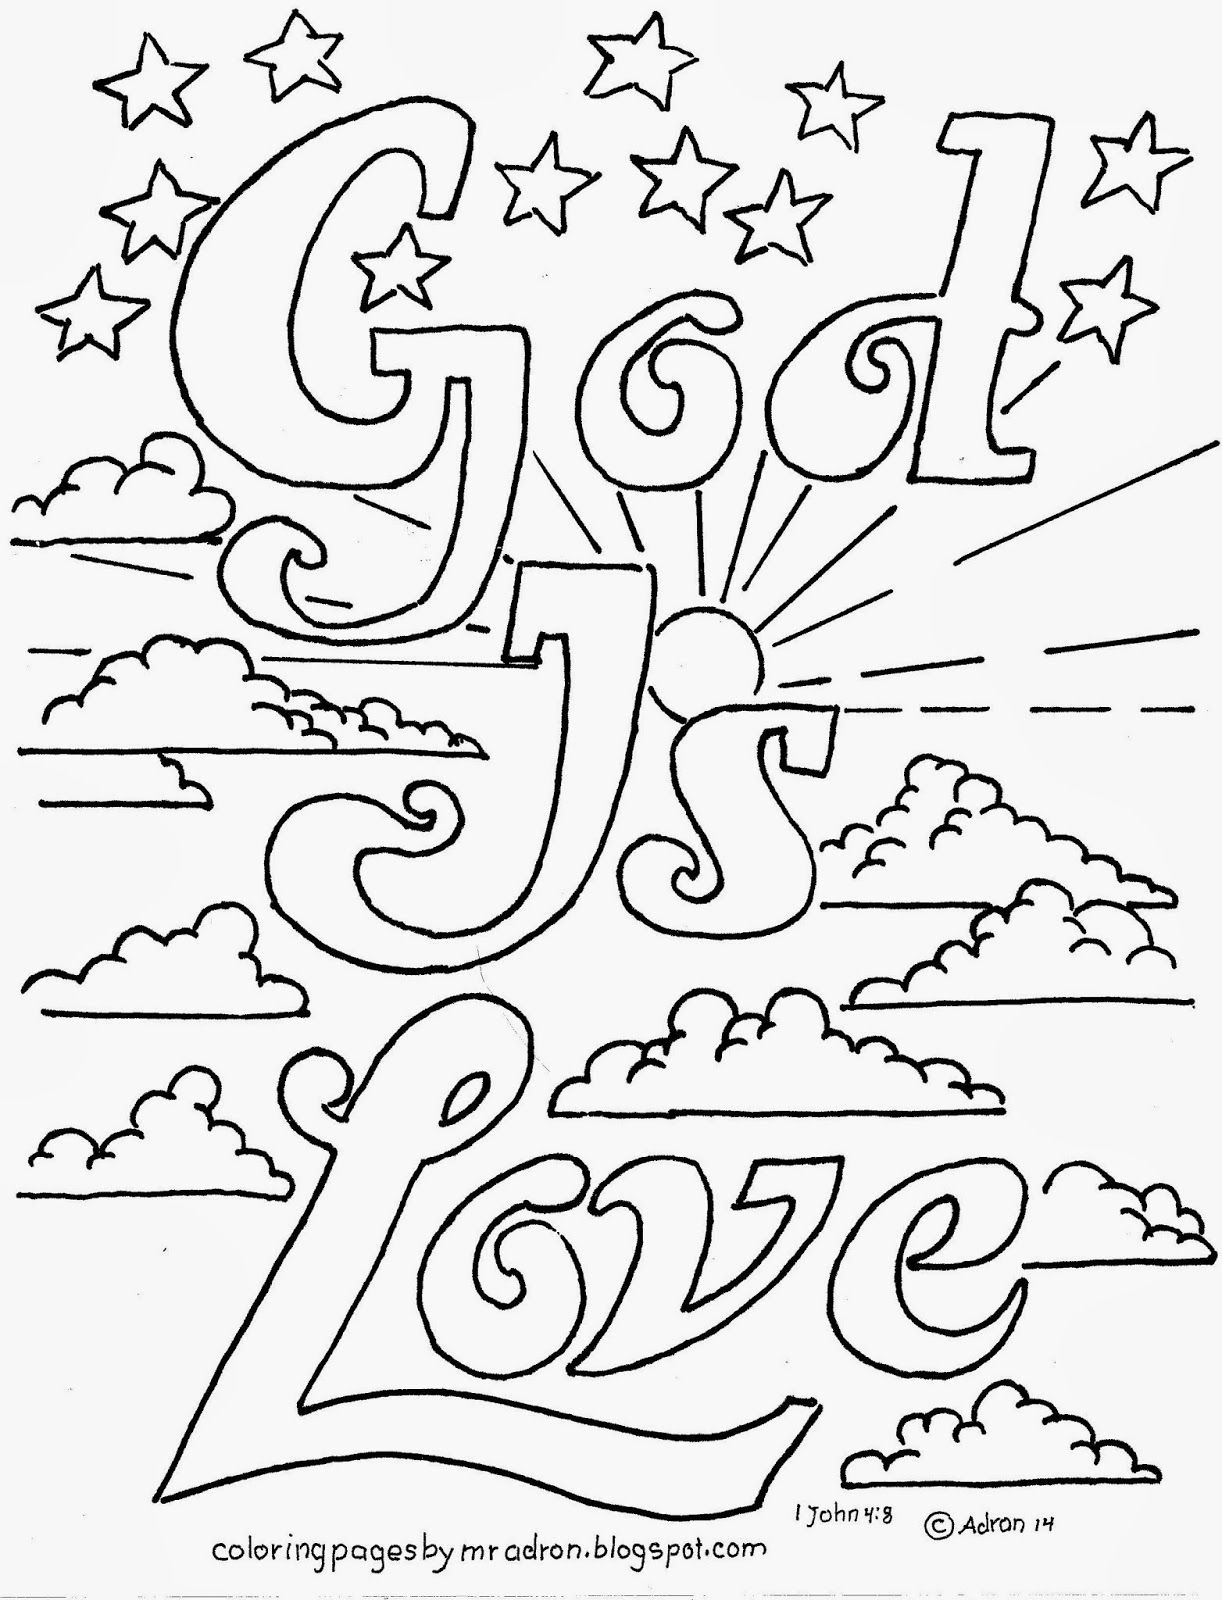 Coloring Pages For Kids By Mr Adron God Is Love Printable Free Kid S Coloring Page 1 John 4